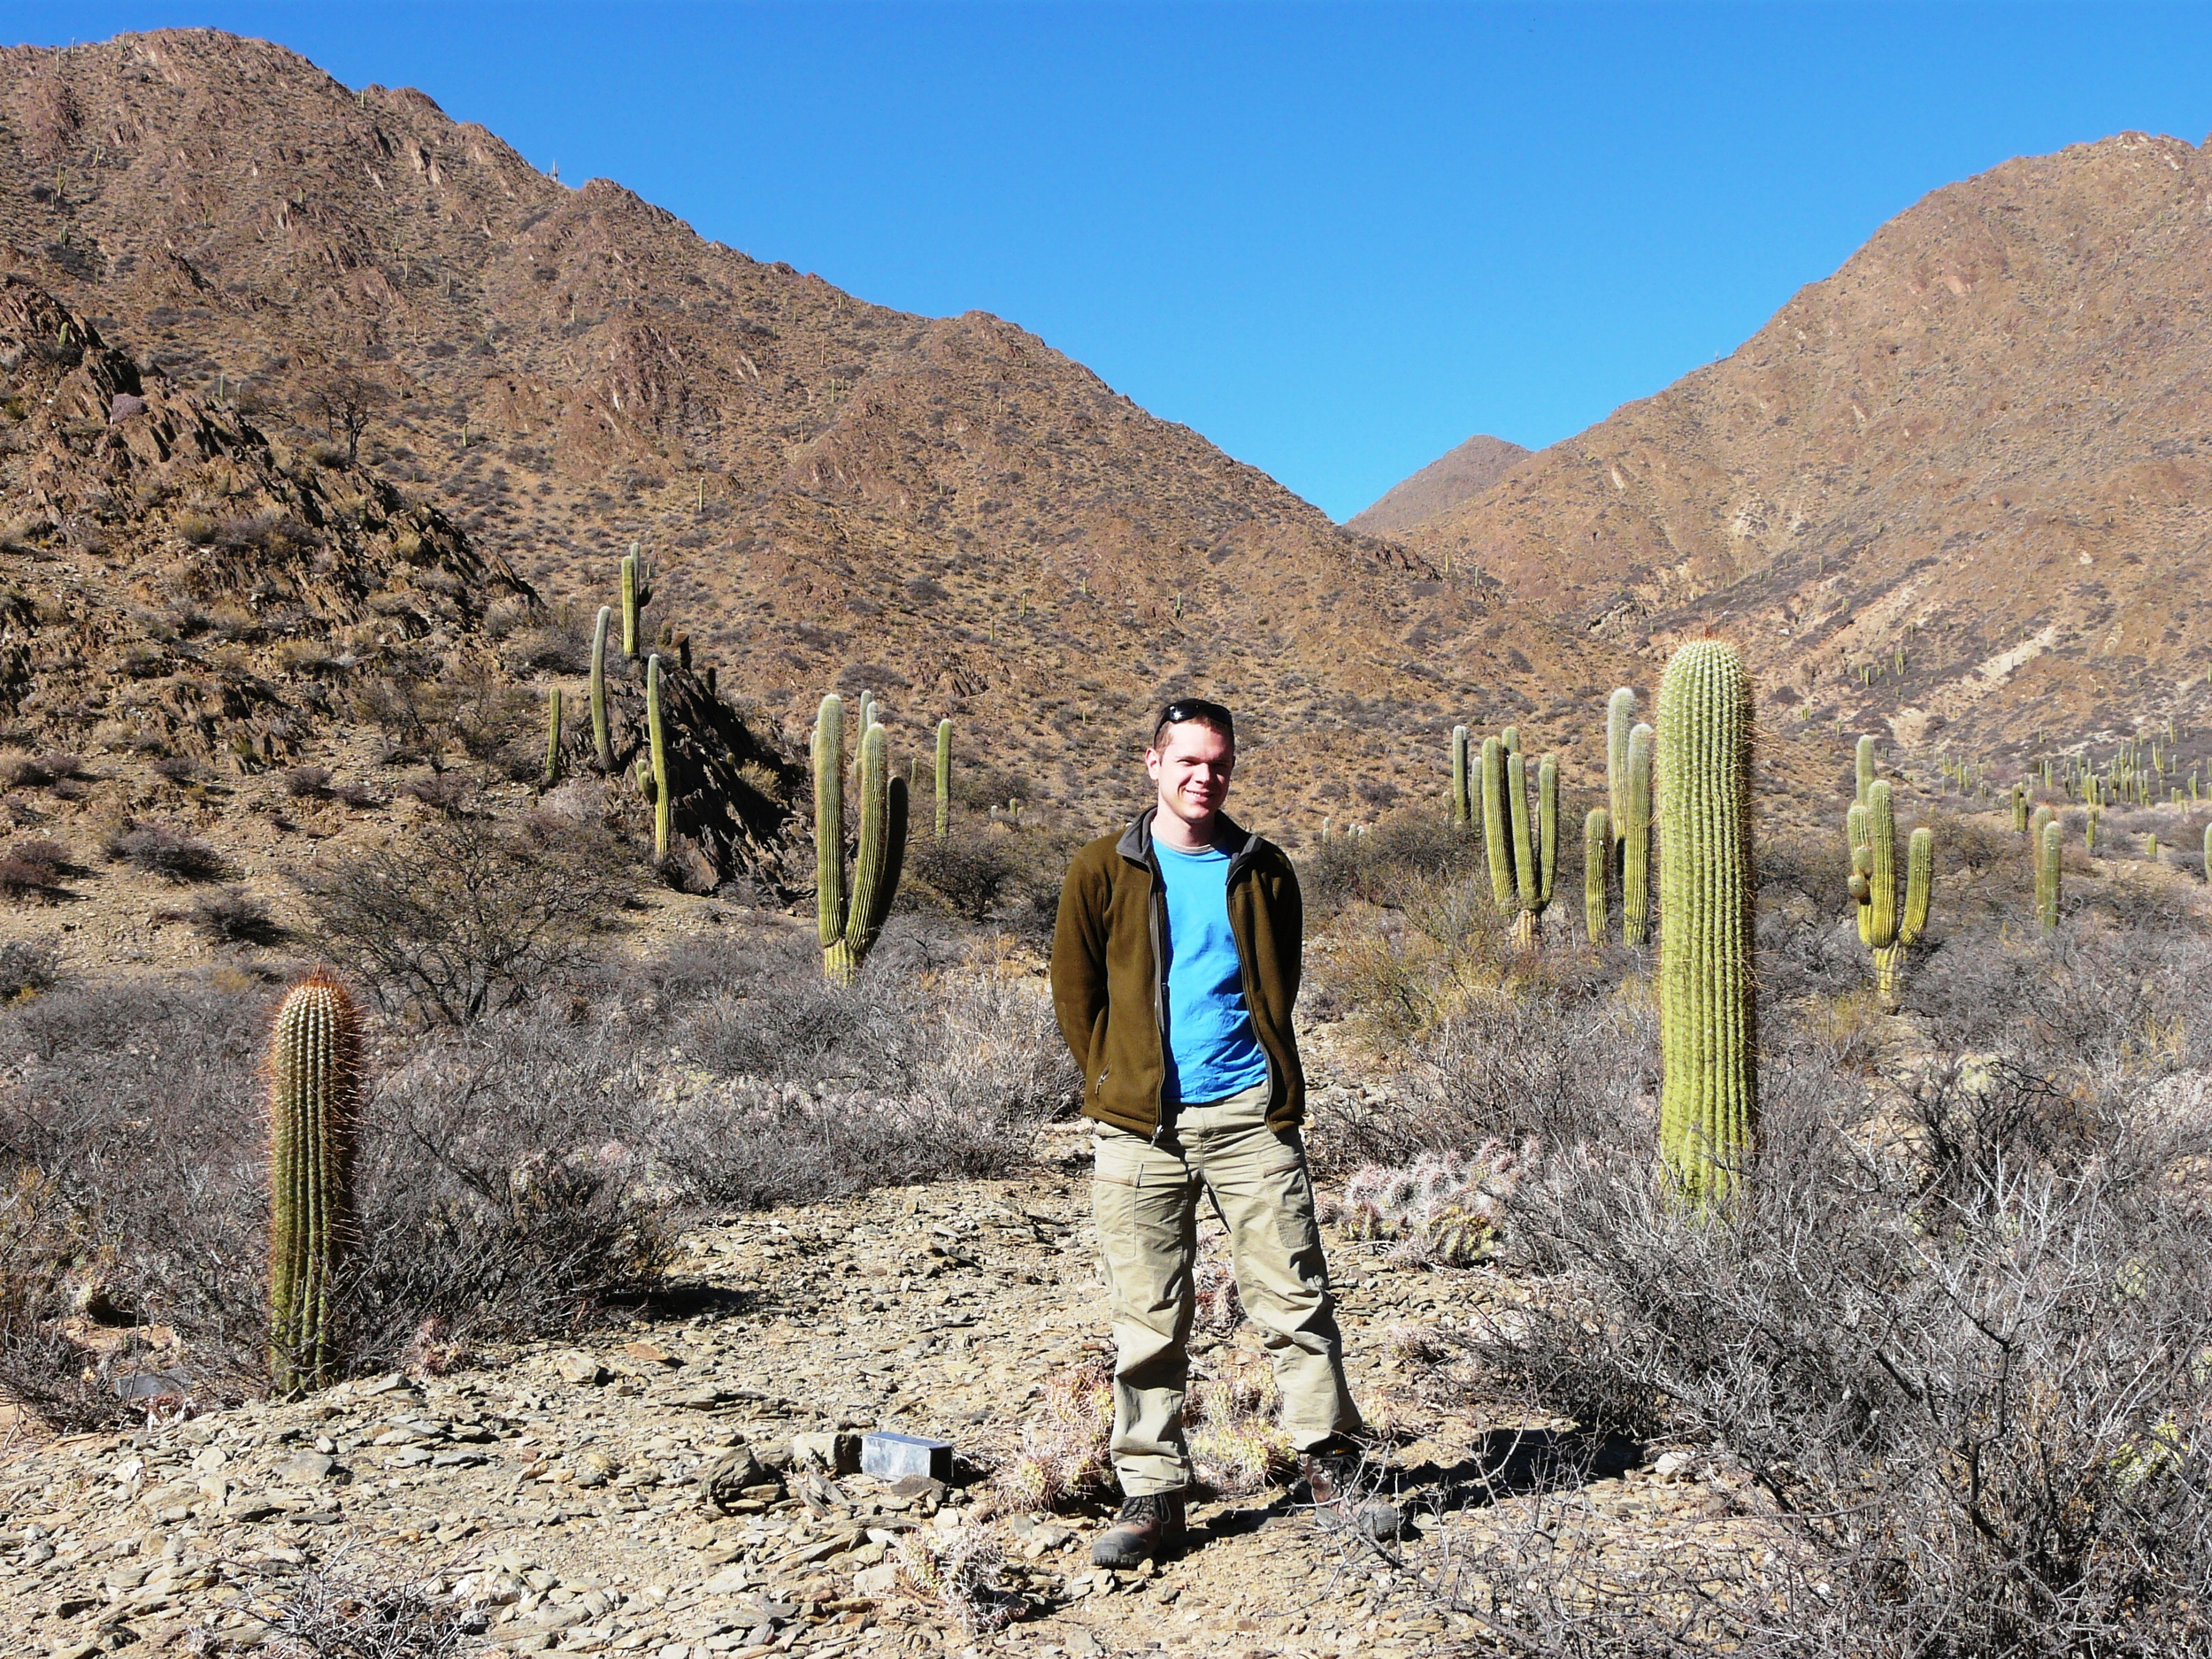 Collecting mammals in the Andes near Cachi, Argentina